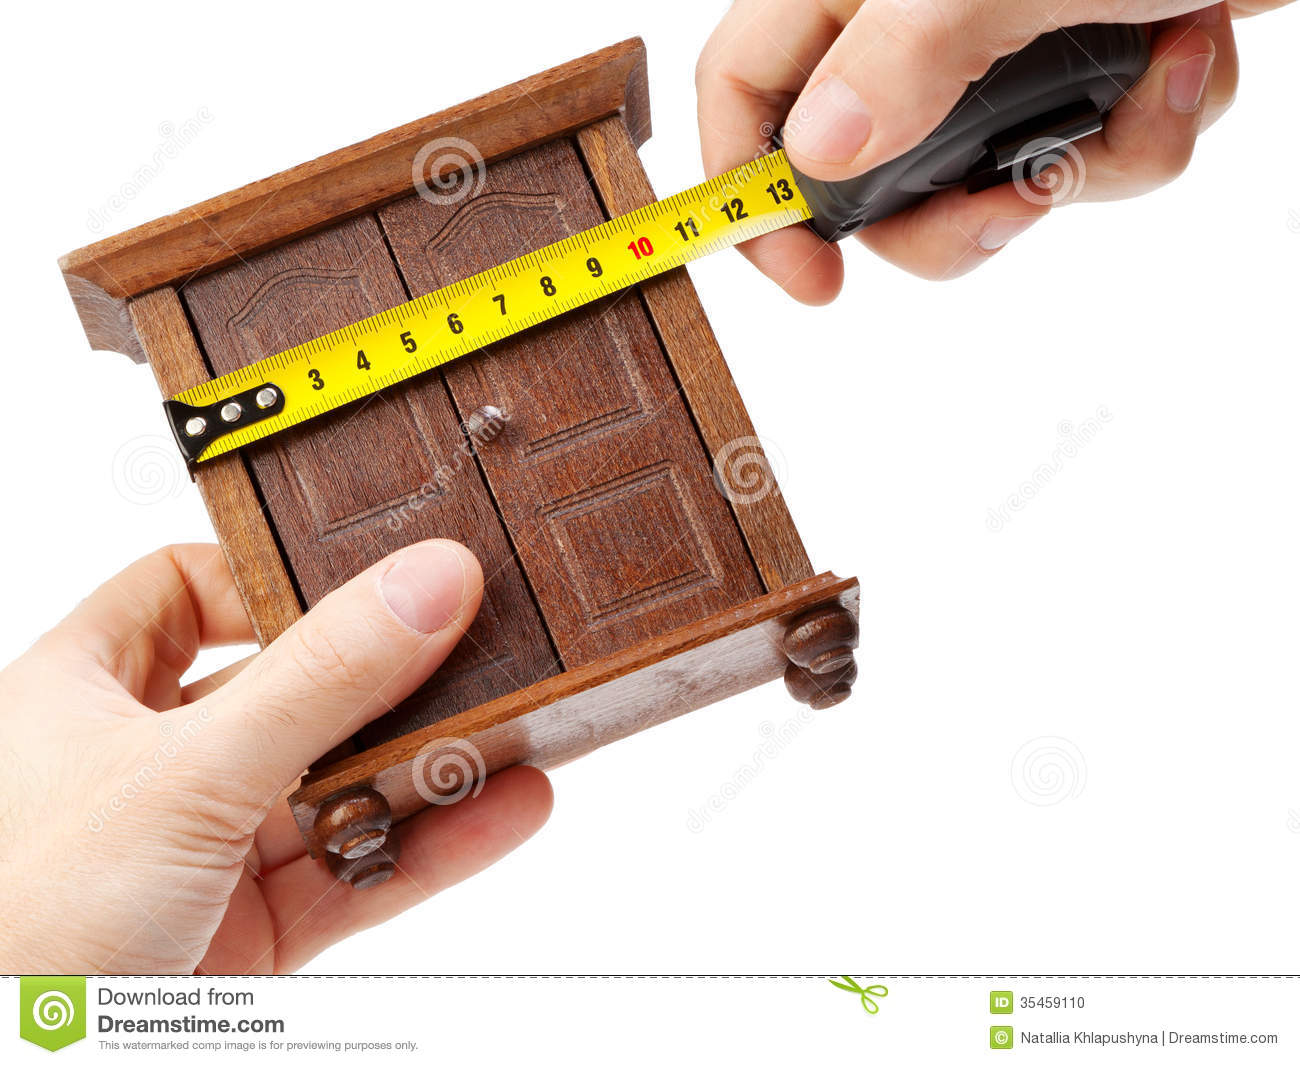 Woodworker Measuring Wardrobe With A Tape Measure